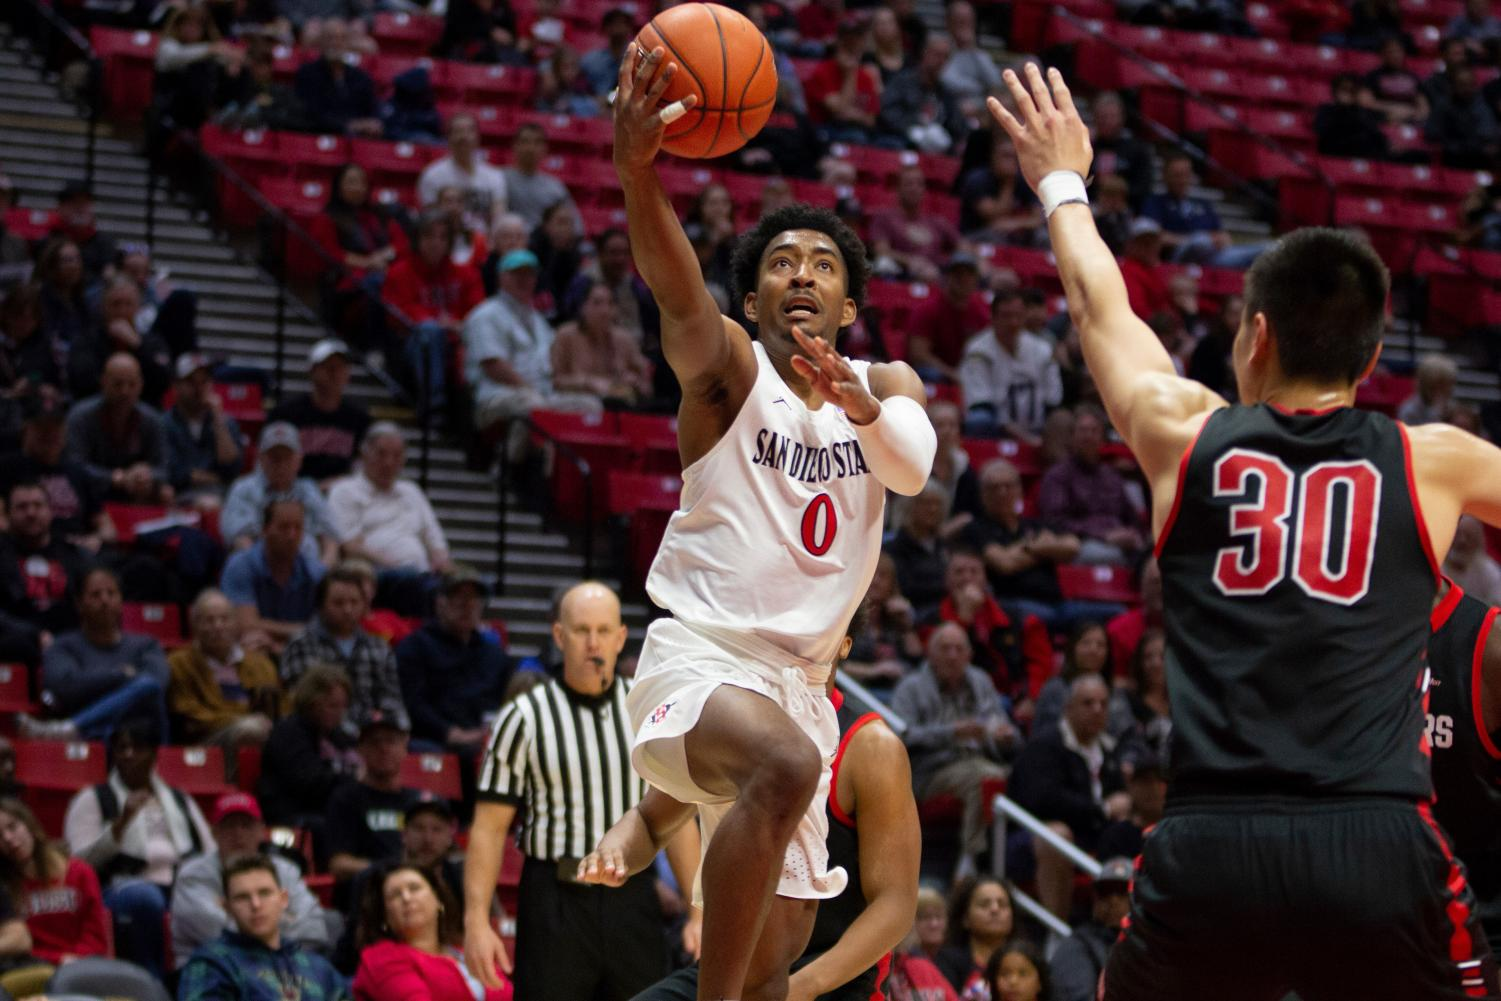 Senior guard Devin Watson attempts a layup during the Aztecs 65-60 victory over CSUN on Jan. 1 at Viejas Arena.